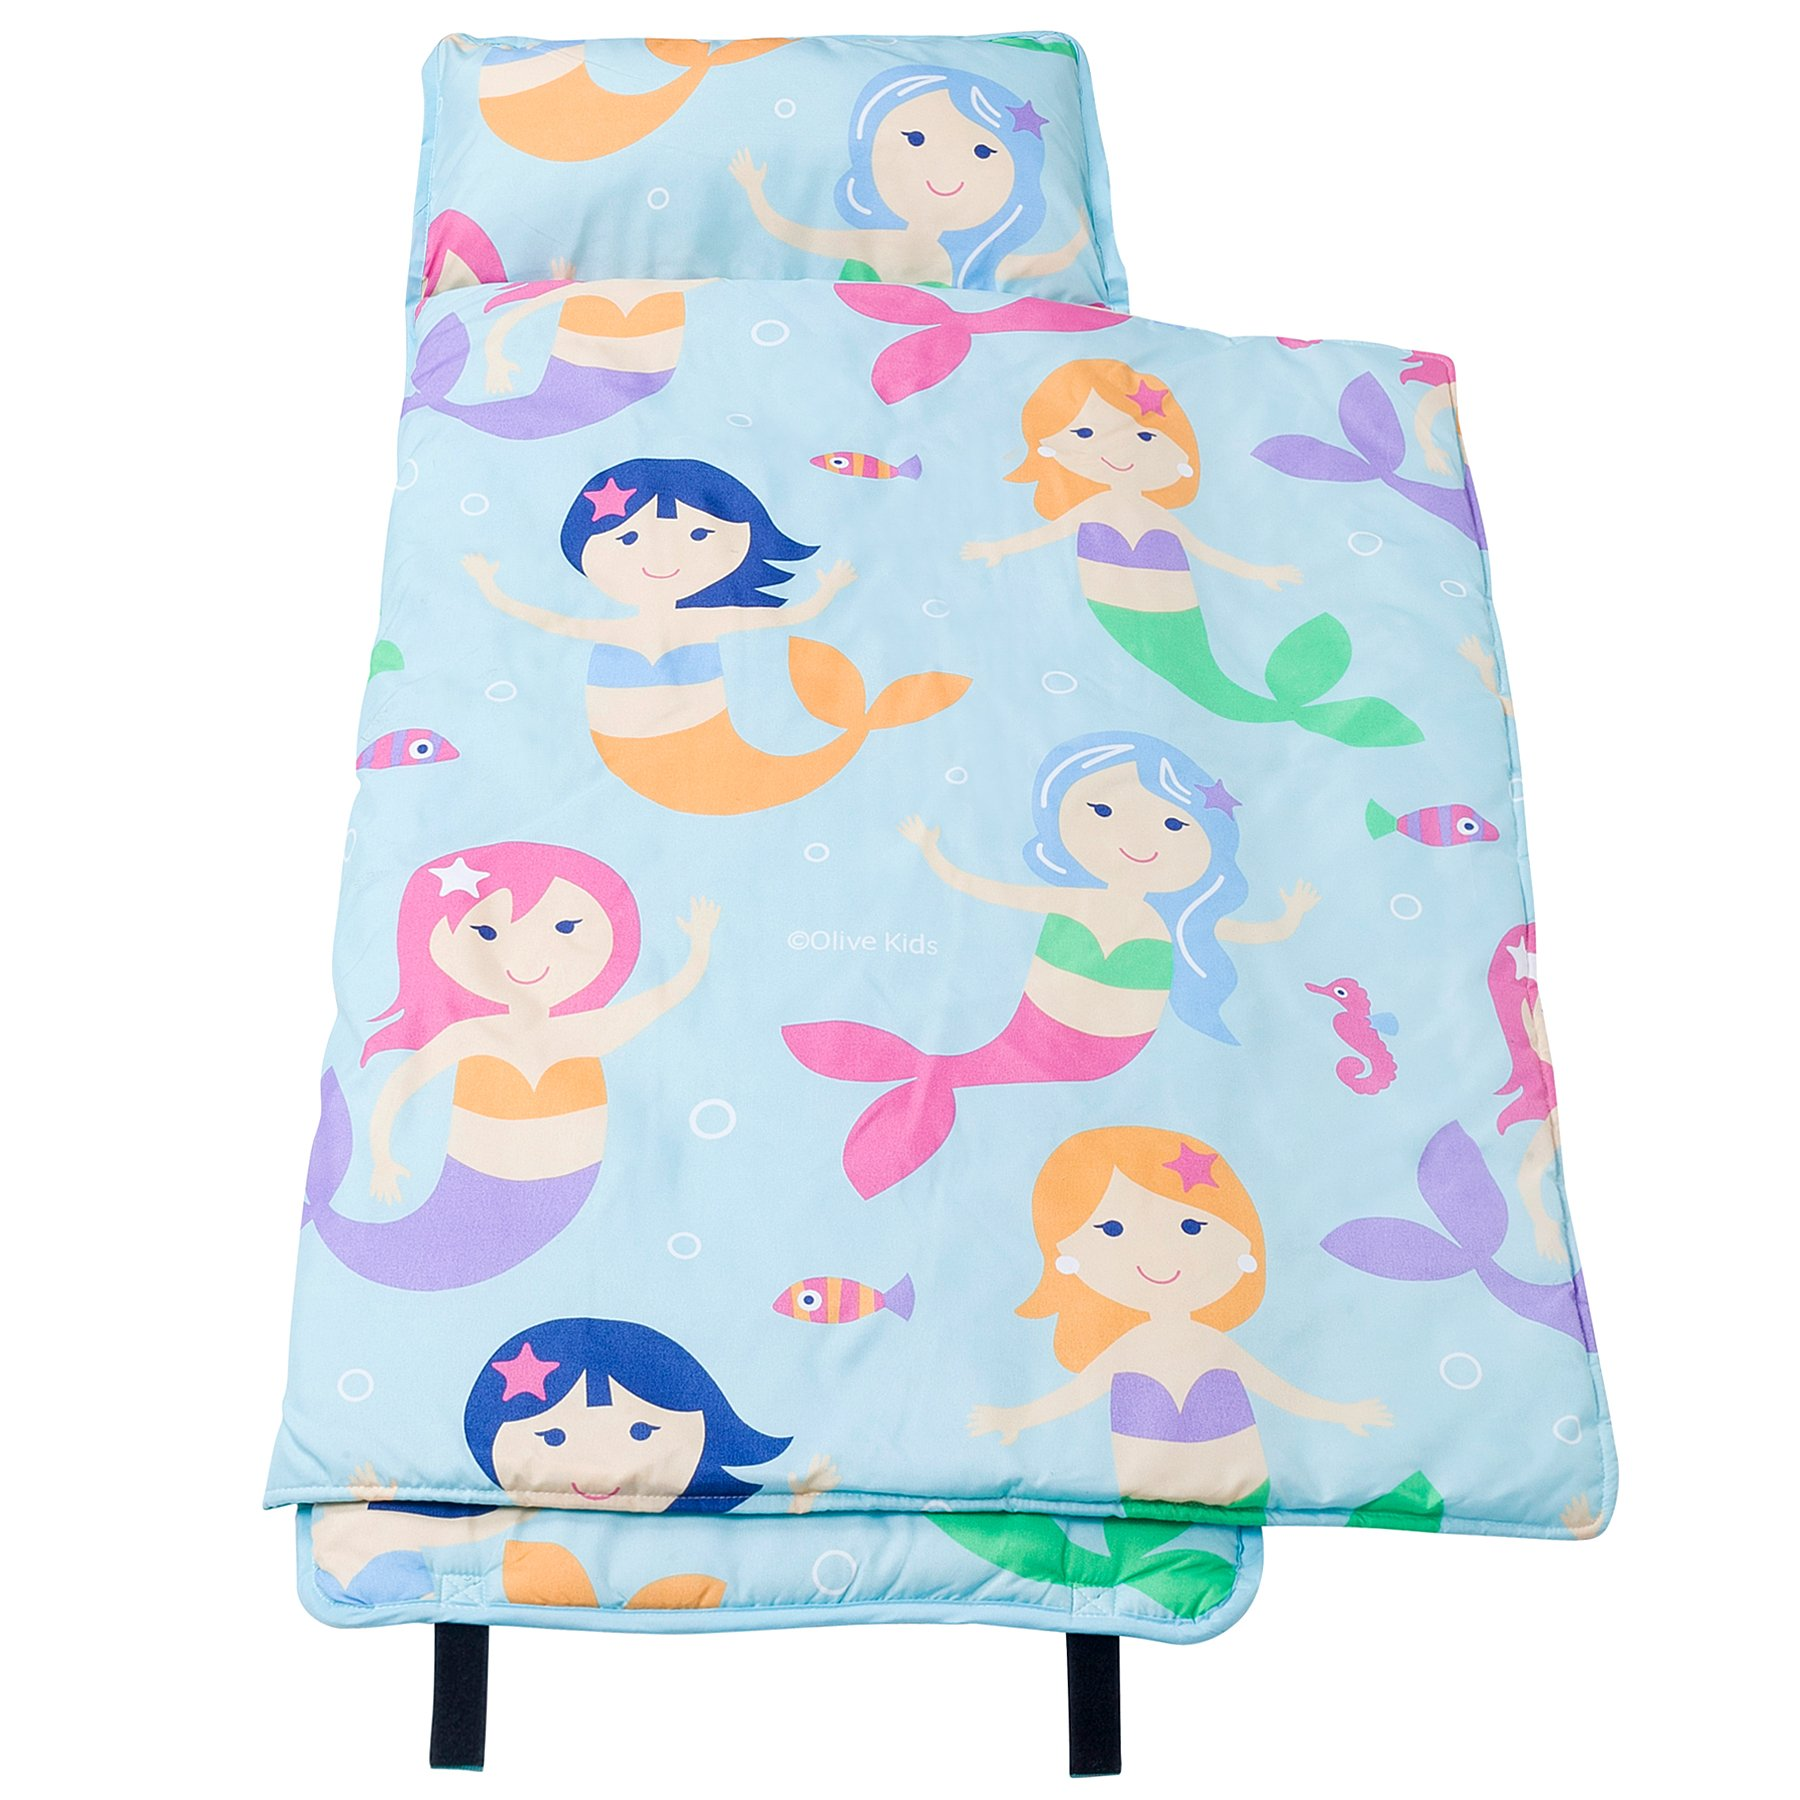 Wildkin Nap Mat Olive Kids by Microfiber Children's Nap Mat with Built in Blanket and Pillowcase, Pillow Insert Included, 100% Microfiber, Children Ages 3-7 years – Mermaids